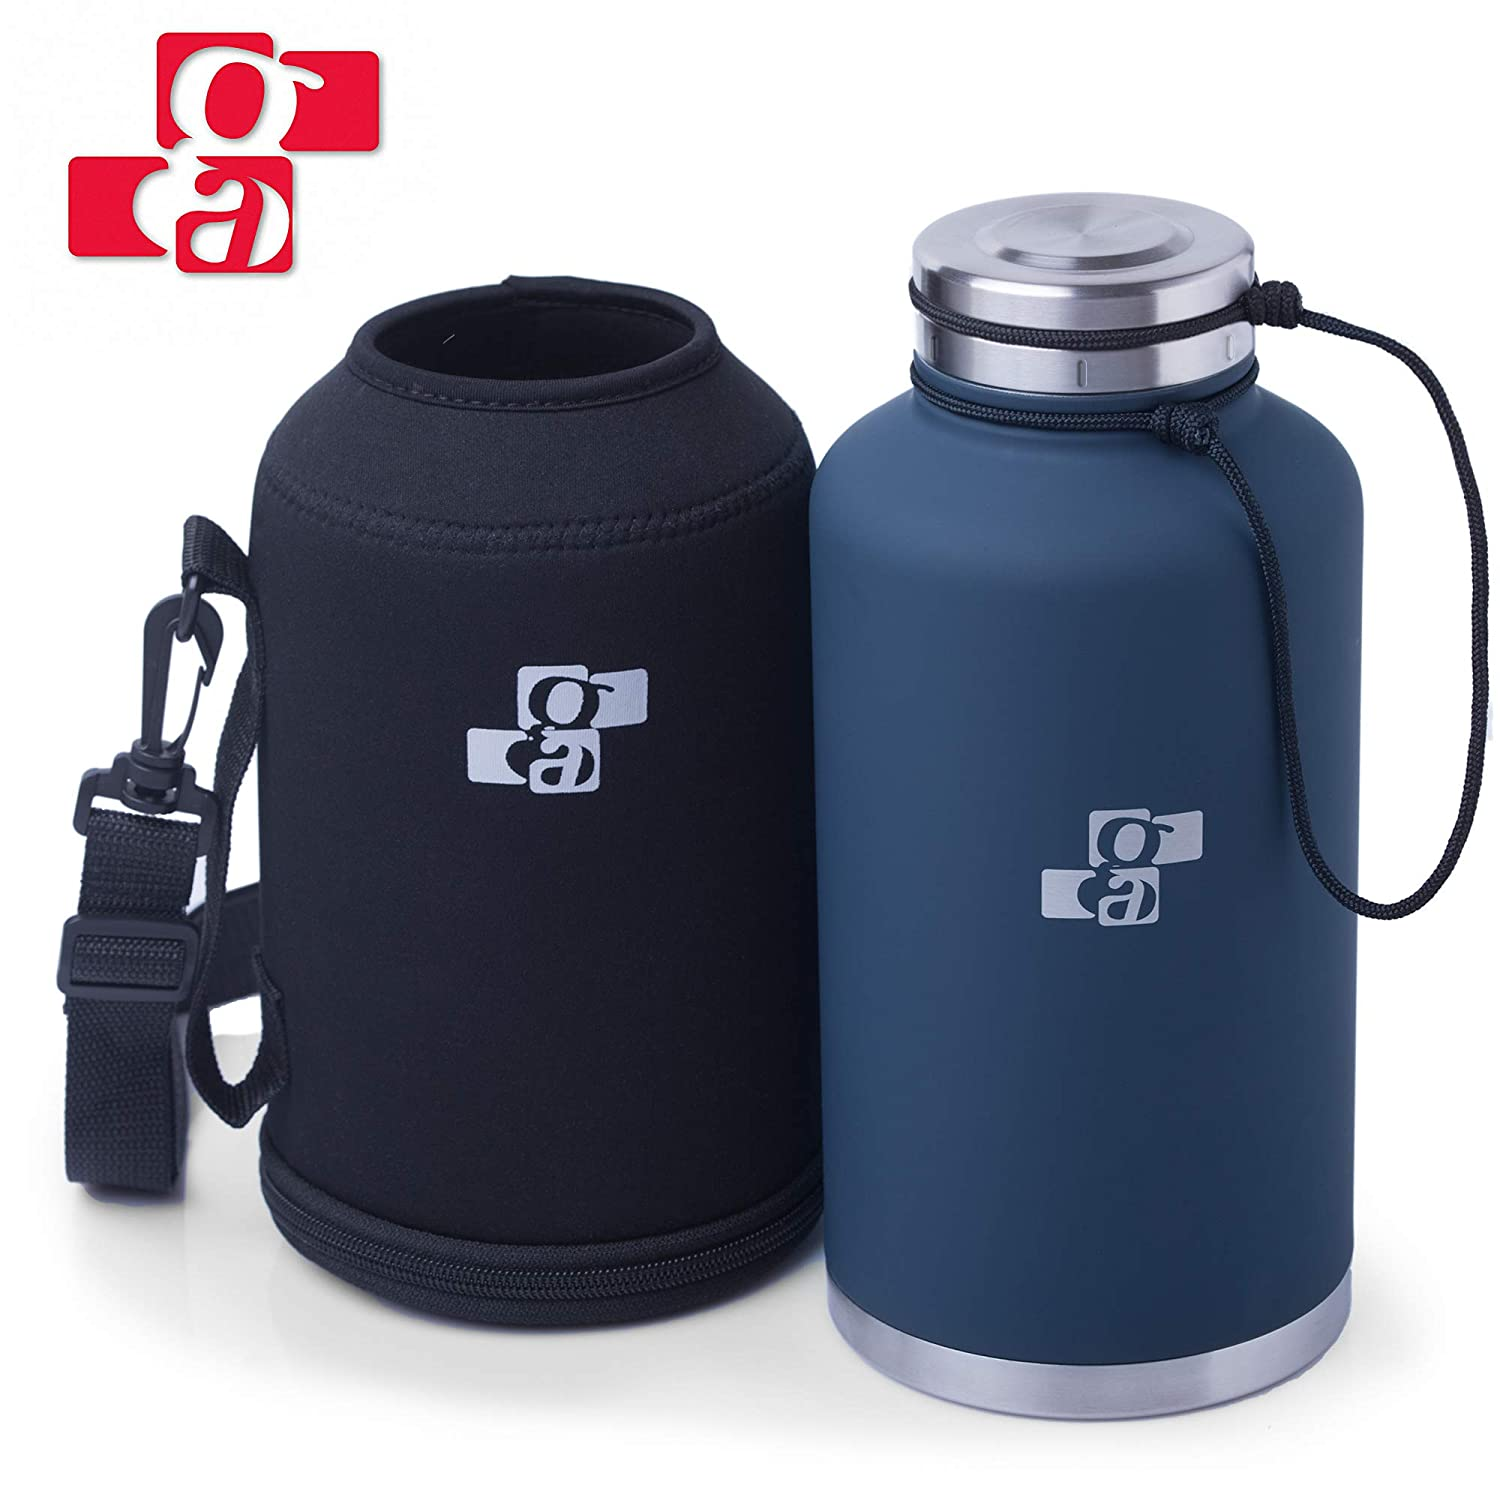 GA Beer Growler and Water Bottle 64 oz - Insulated Stainless Steel Vacuum Thermos Water Jug for Hot and Cold Beverages - Dark Blue with Black Neoprene Growler Carrier